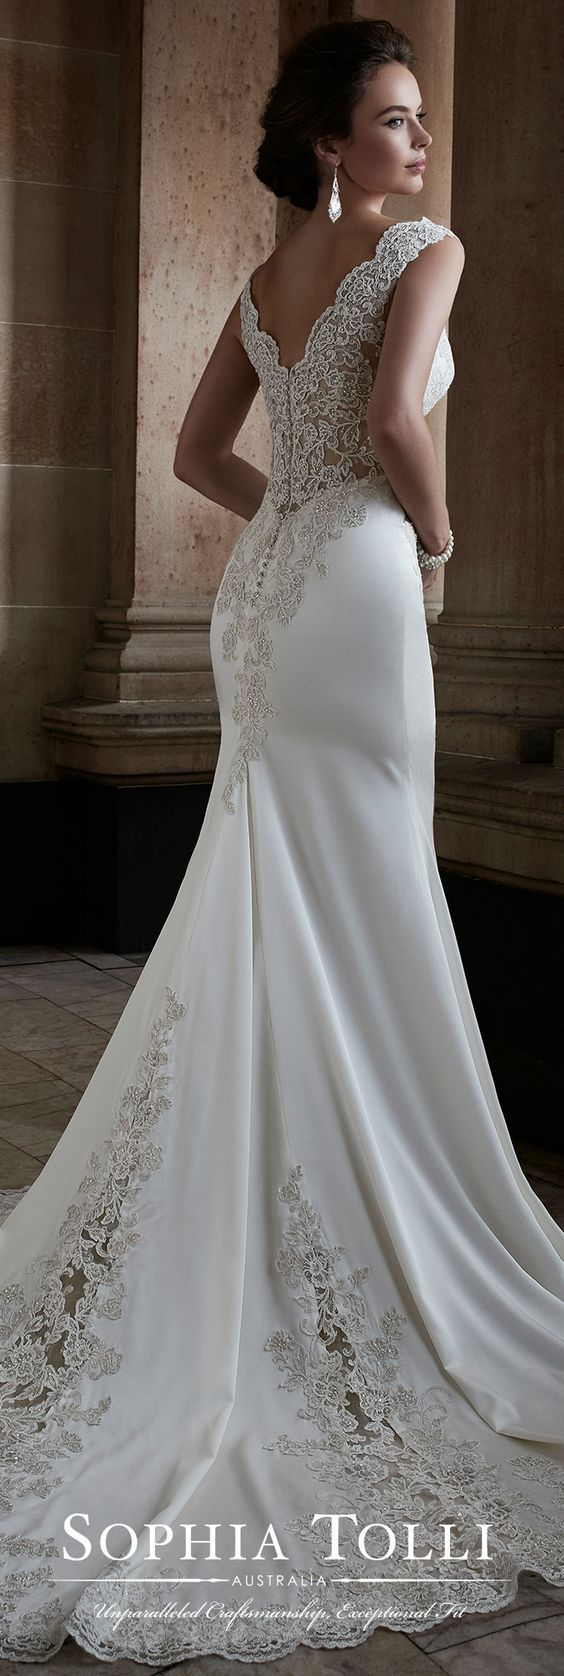 best wedding dresses images on pinterest wedding ideas dream